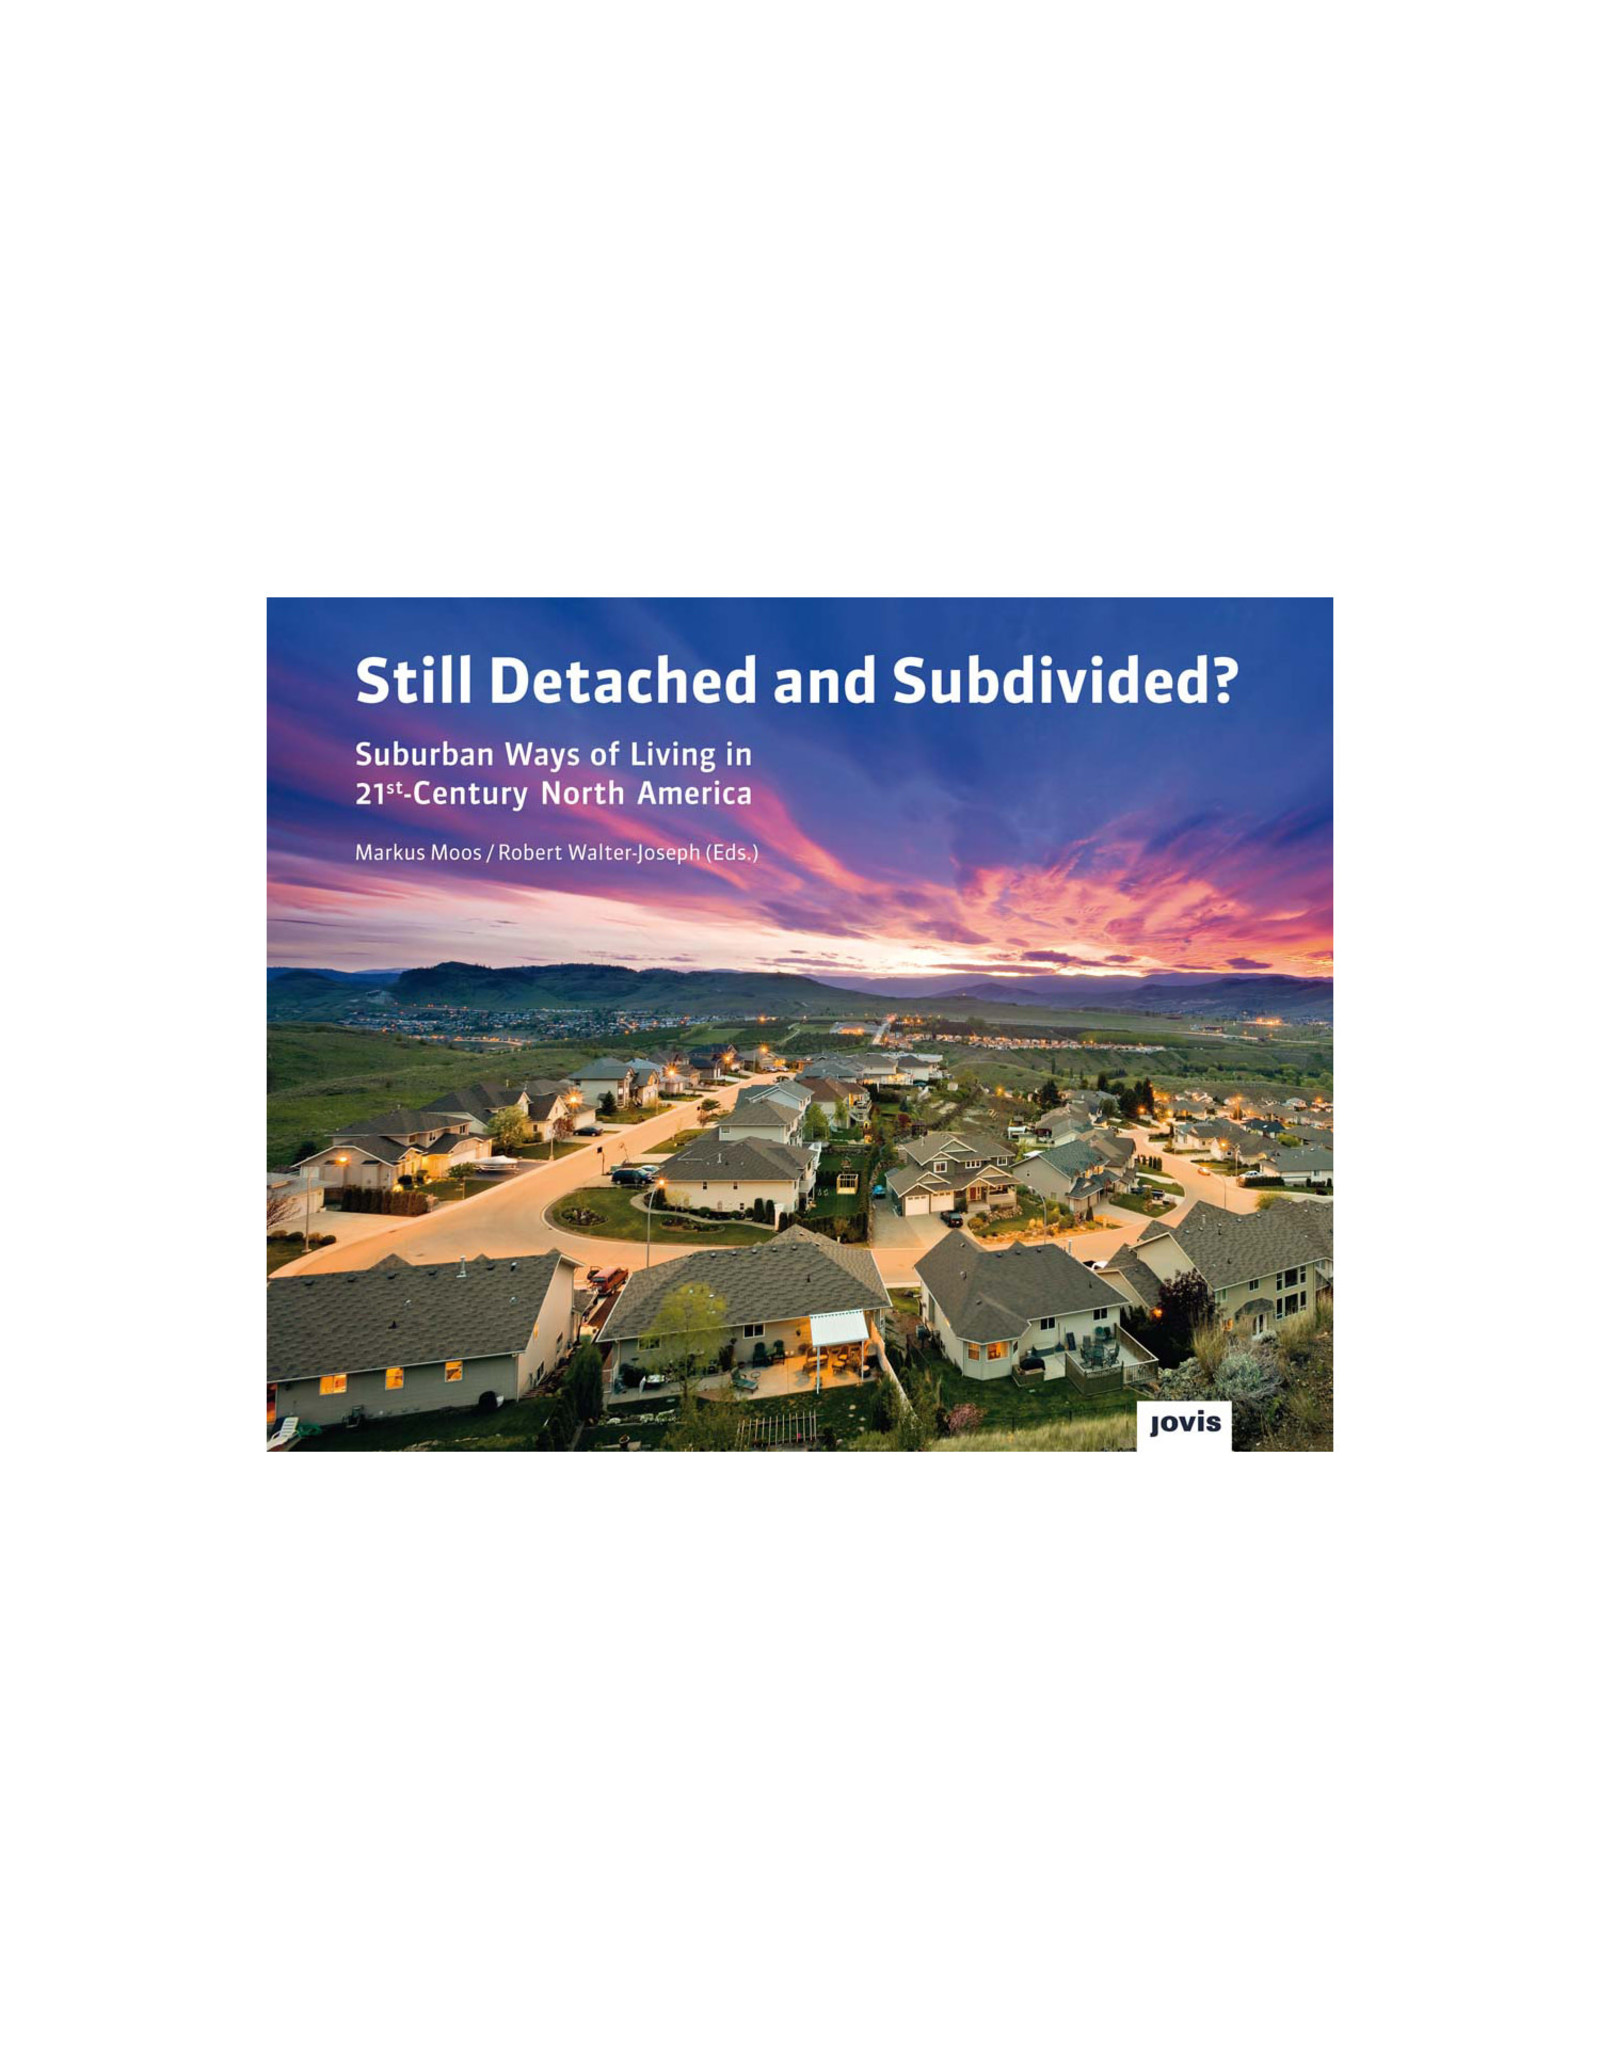 Still Detached and Subdivided? Suburban Ways of Living in 21st-Century North America